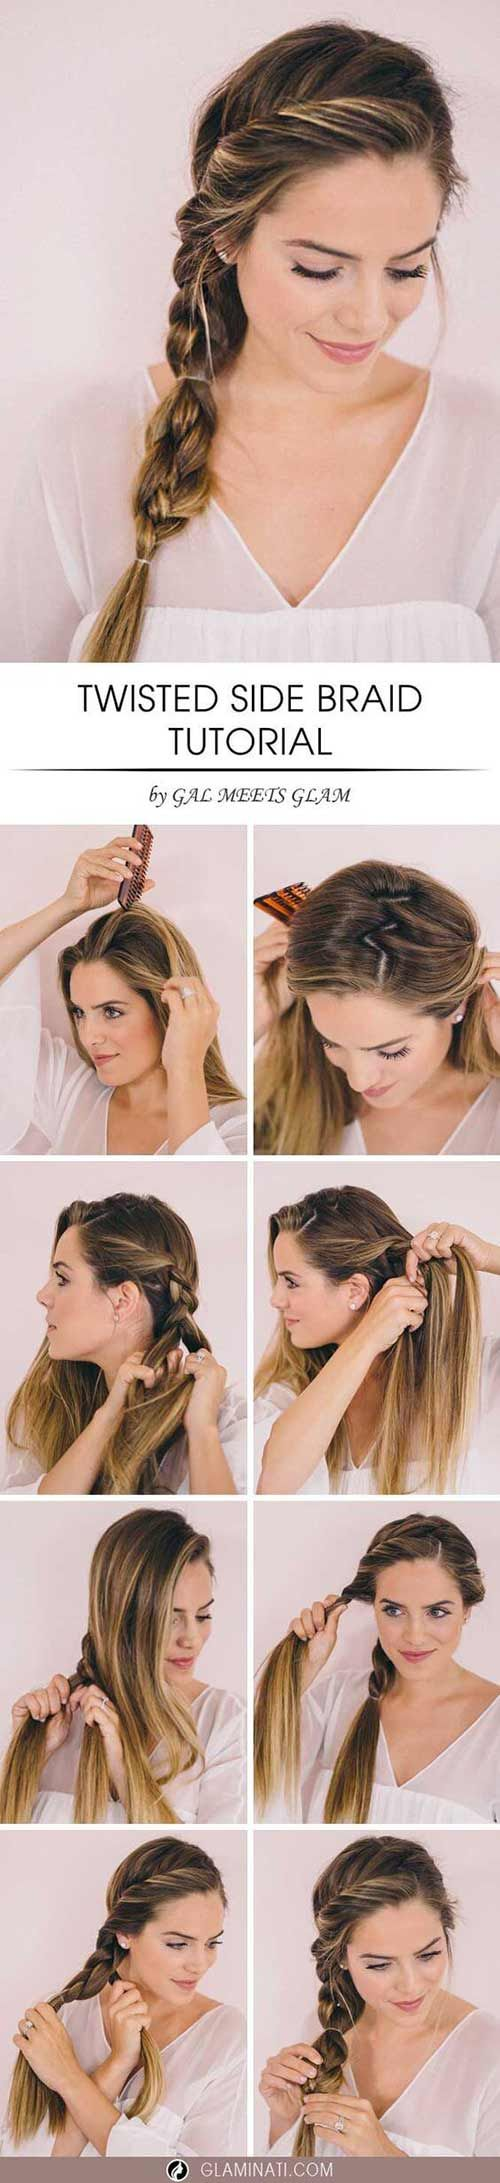 20 Awesome Hairstyles For Girls With Long Hair forecast